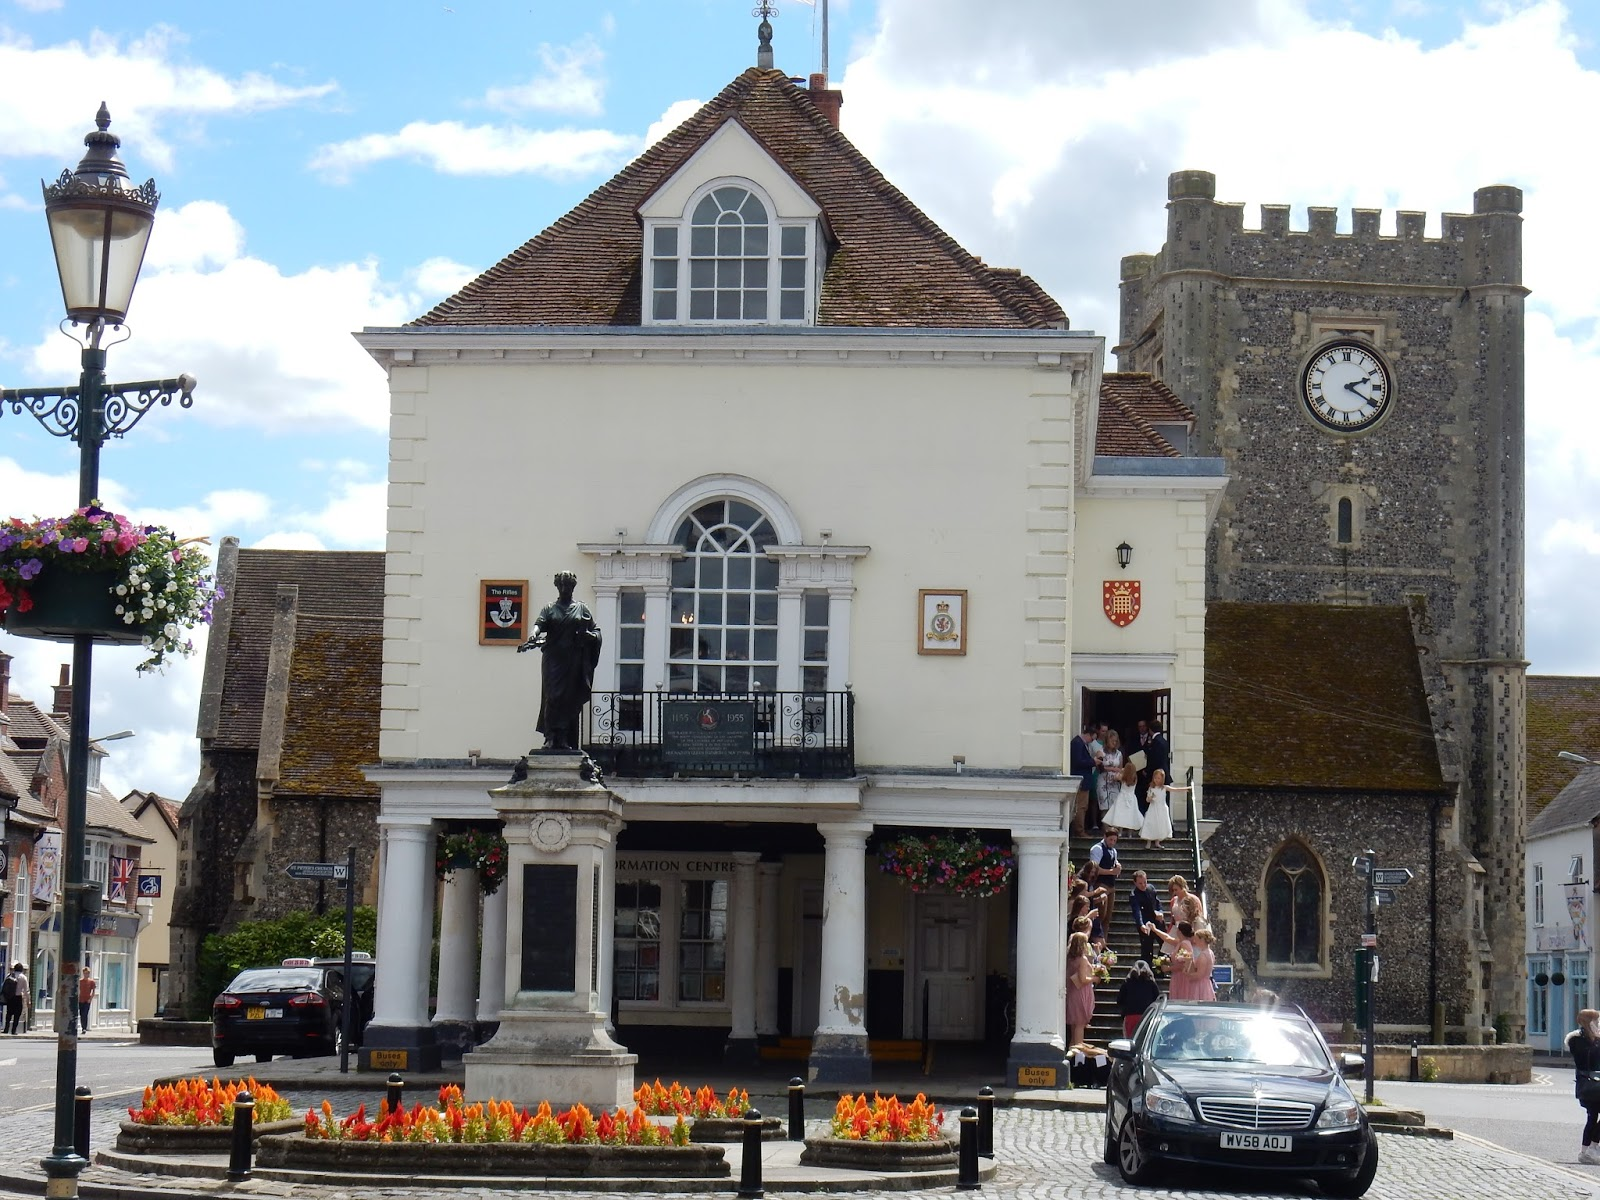 The White Painted Town Hall Is Like A Mini Version Of One In Abingdon It Was Built 1670 We Had To Stop And Watch Wedding Party Descend Stairs